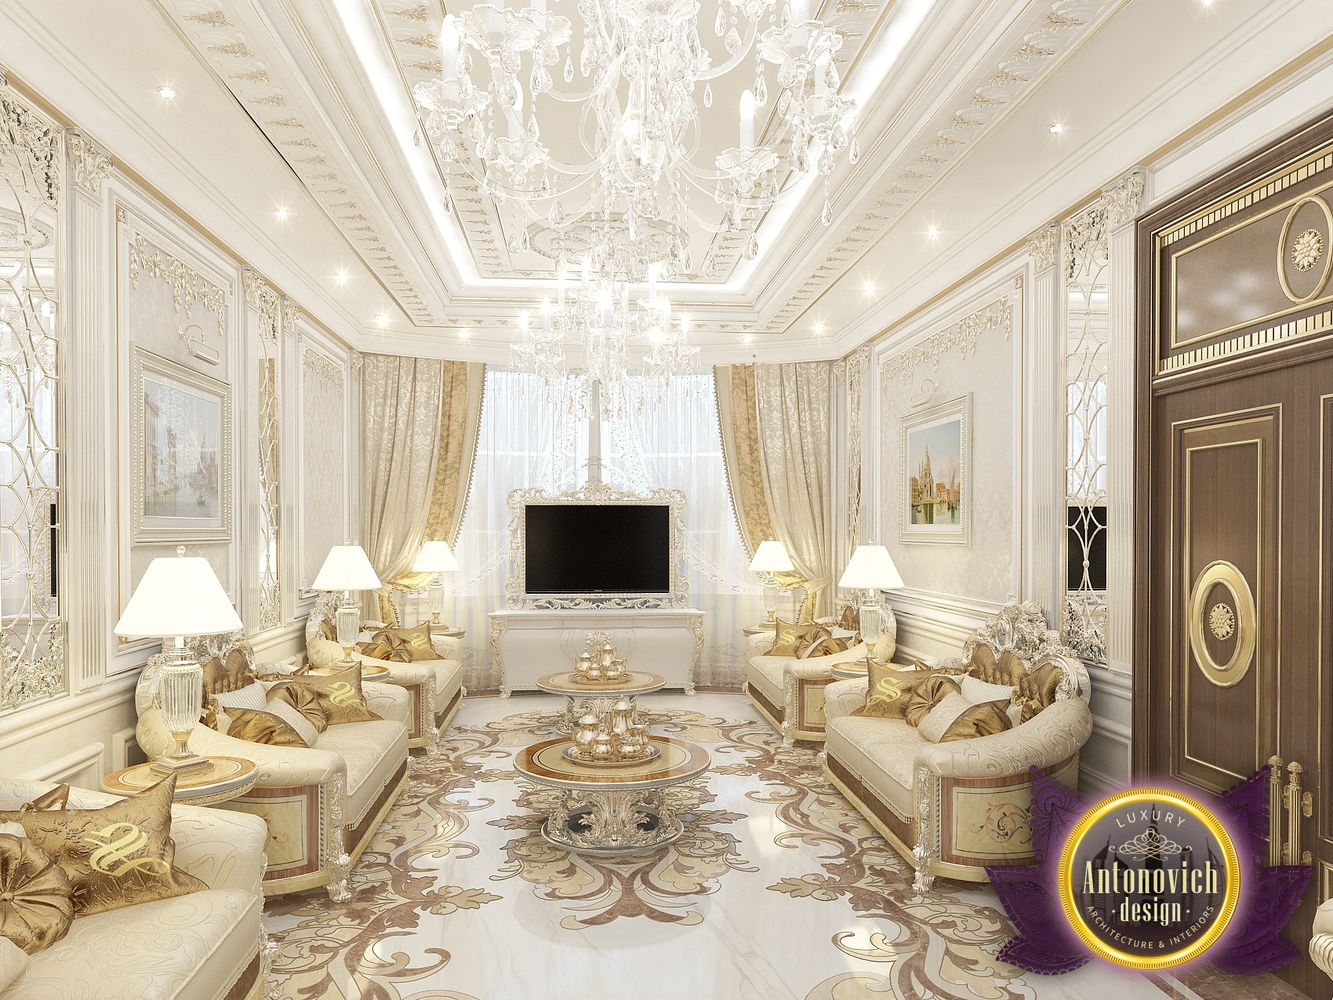 Luxury antonovich design uae living room interior design for Room interior design